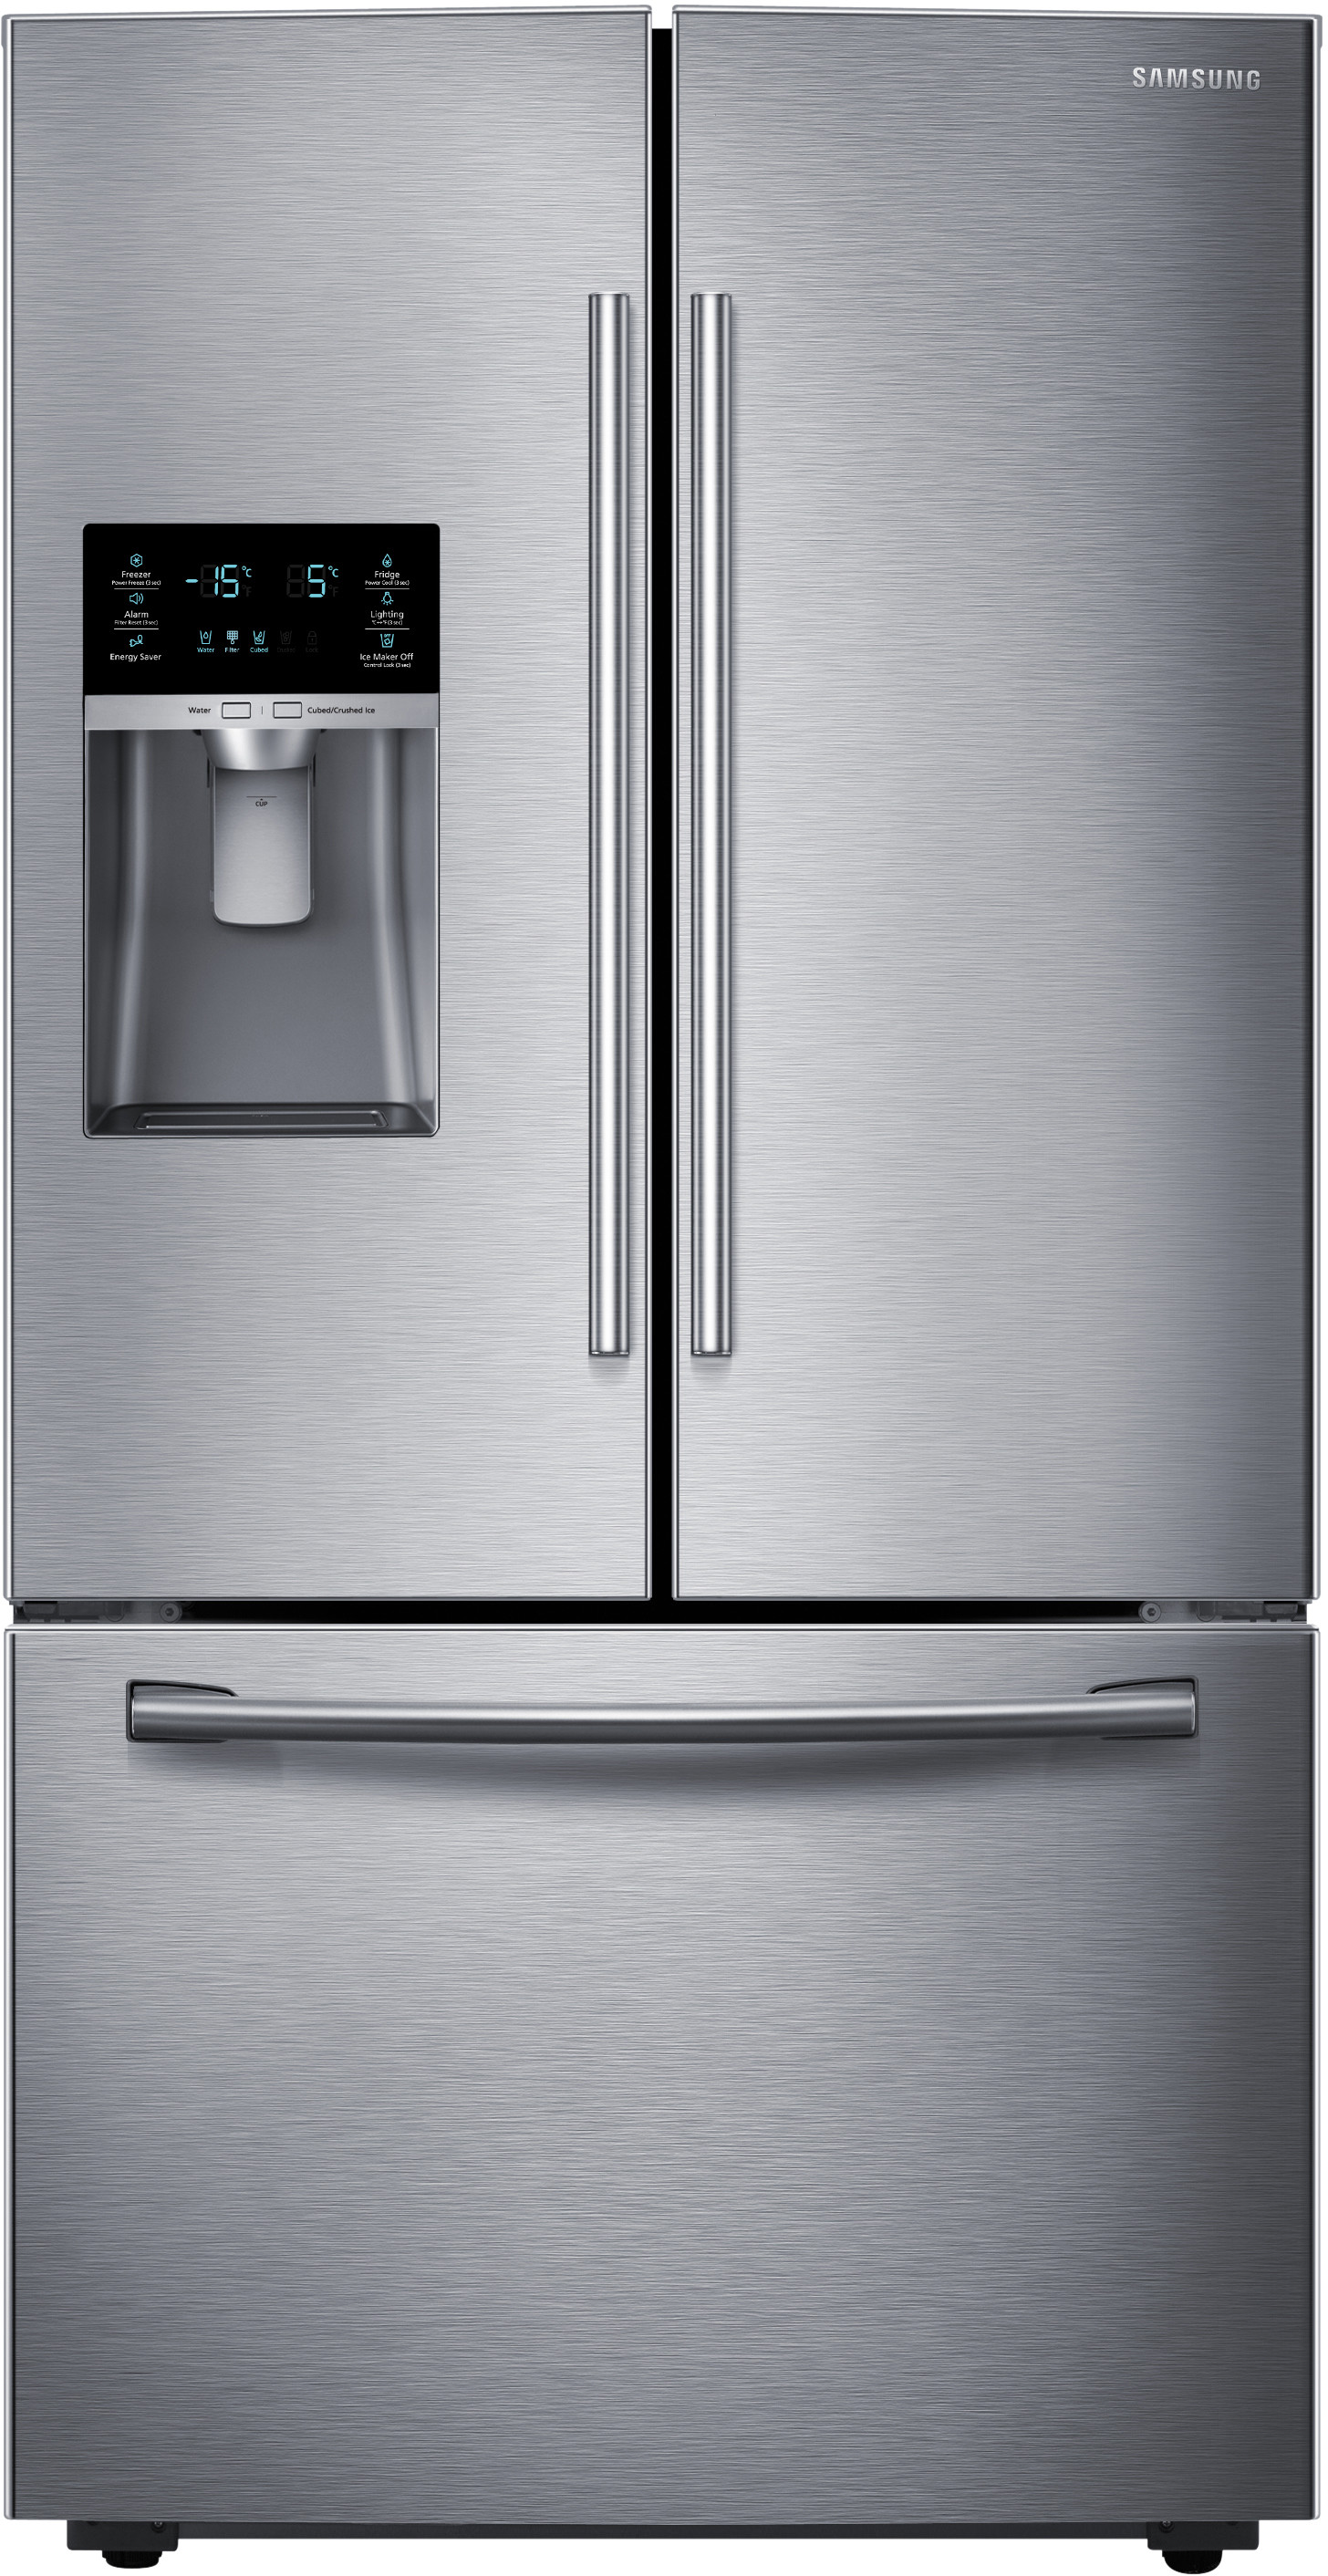 Samsung Rf28hfedbsr 36 Inch French Door Refrigerator With Coolselect